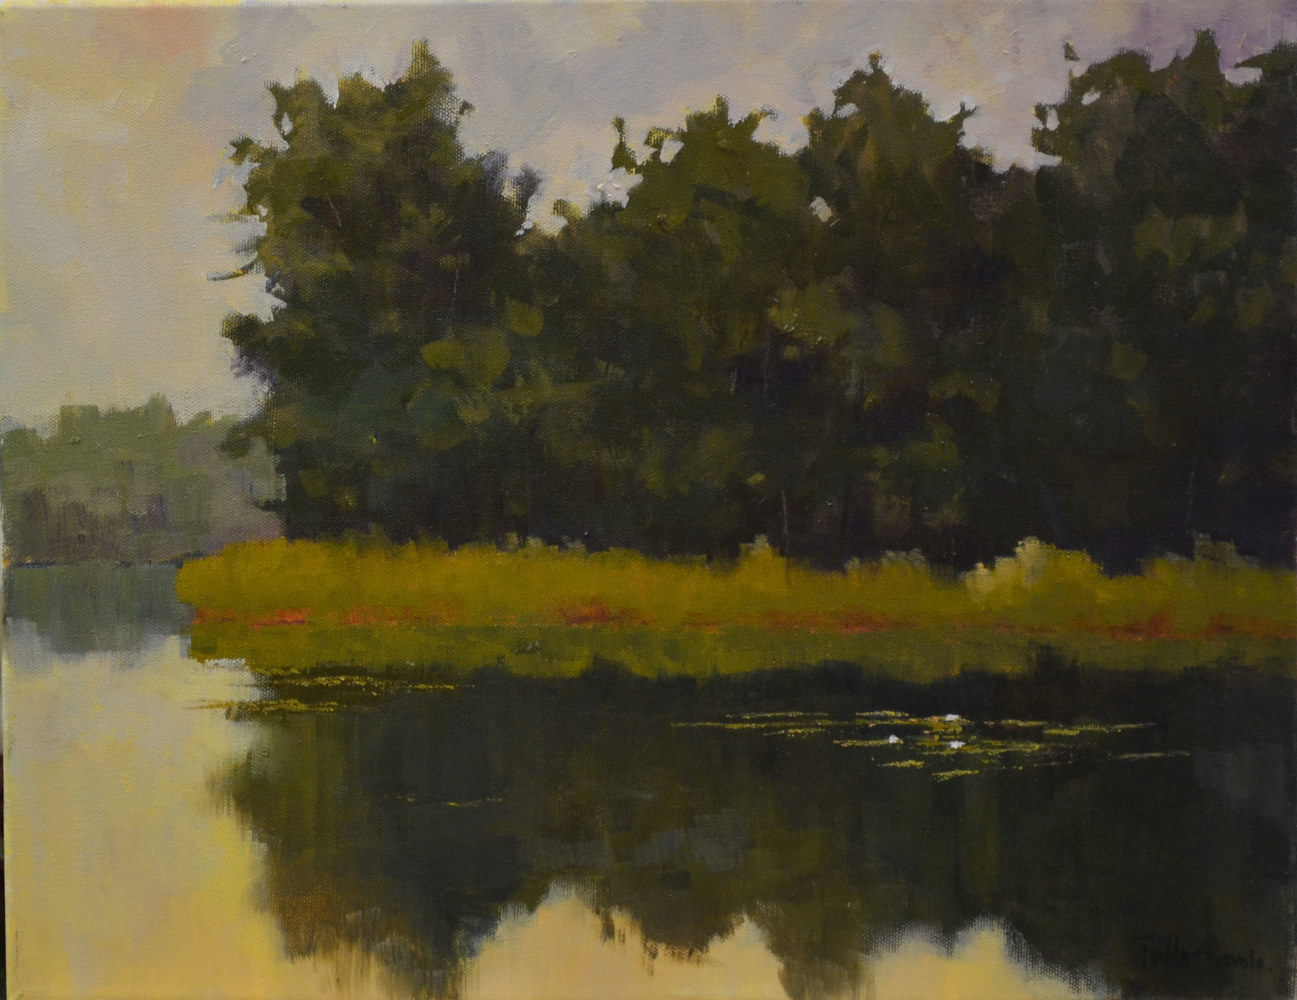 Evening Calm - oil on canvas 14 x 18  29-0613 by Patricia Savoie